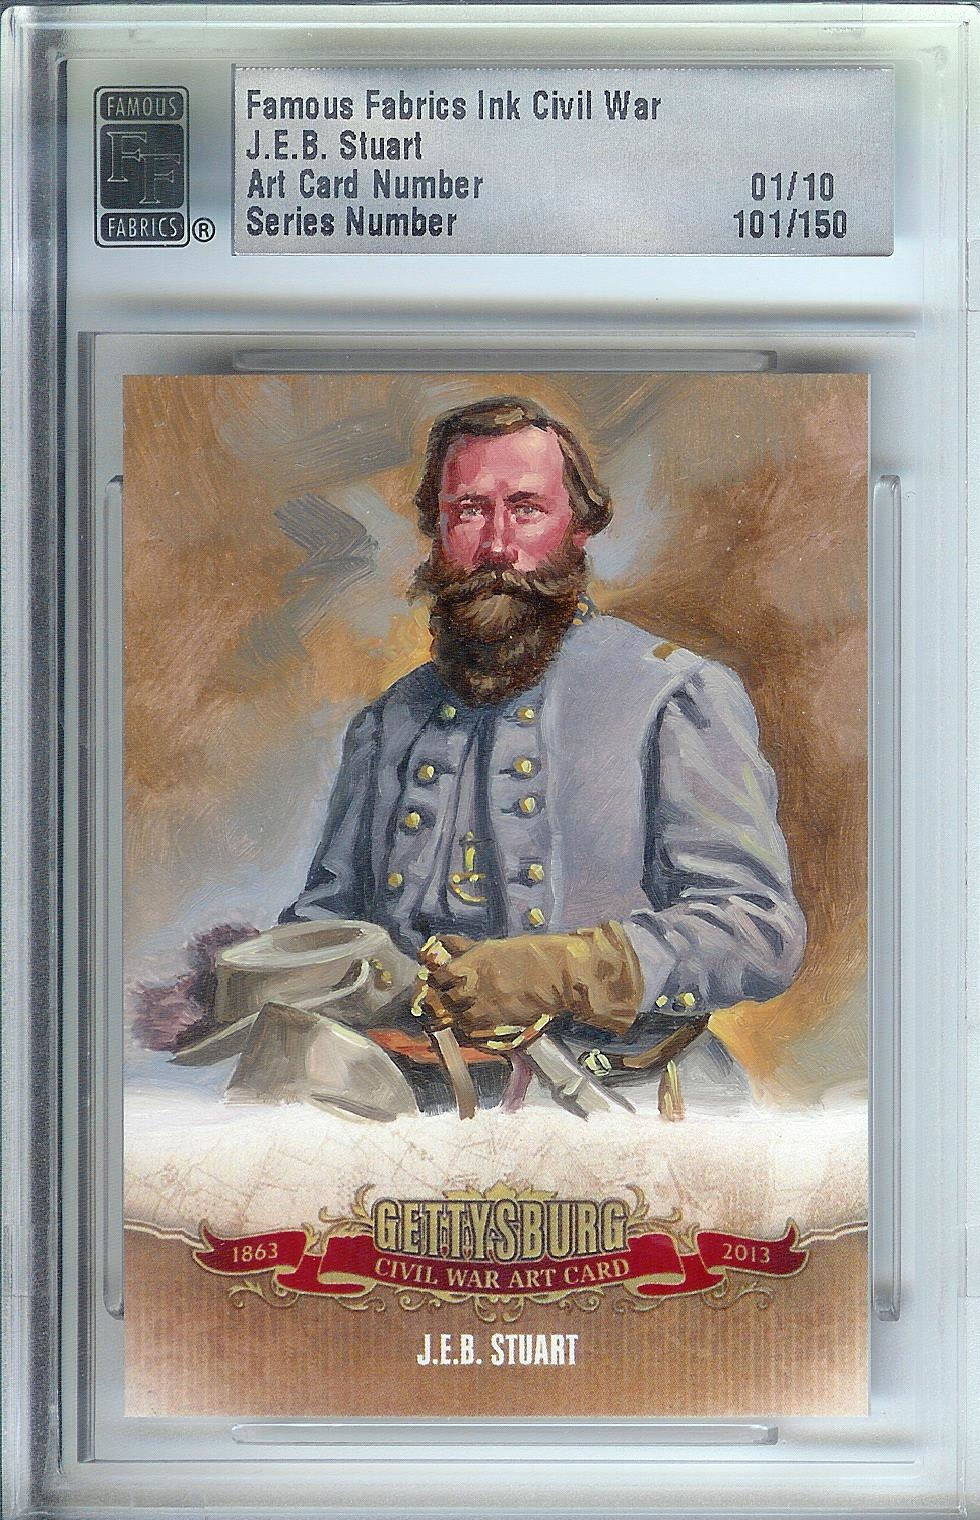 the undeniable value of civil war art Civil war wall art helps us recount and remember the lessons of the battle between the confederacy and the union, when the very fate of our country's unity hung in the balance [less] us history.